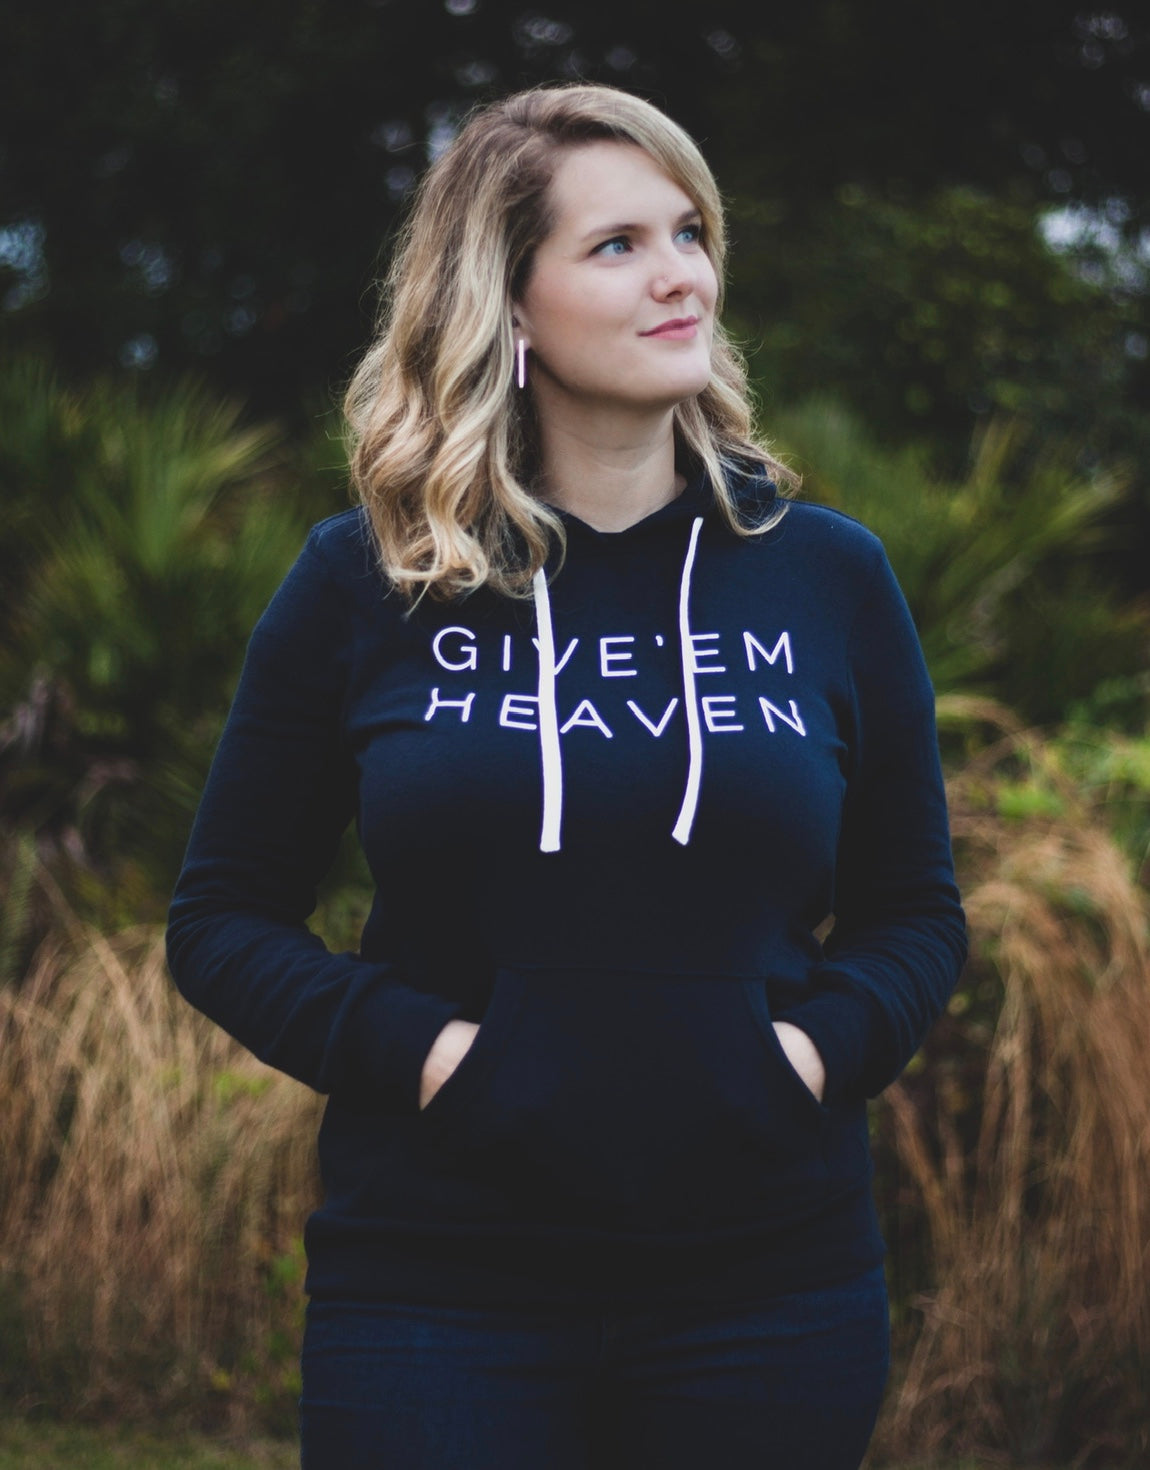 GIVE'EM HEAVEN PULLOVER HOODIE- UNISEX  HOODED SWEATSHIRT